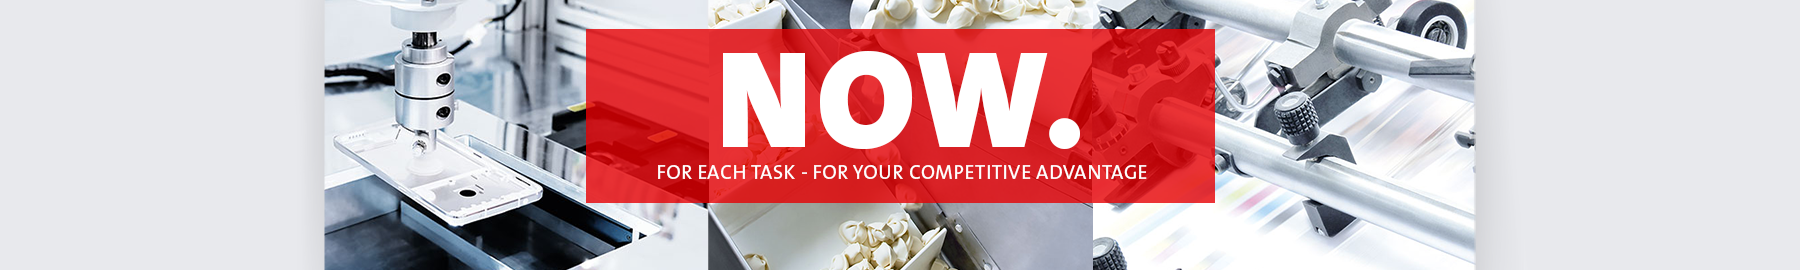 NOW - For each task - For your competitive advantage